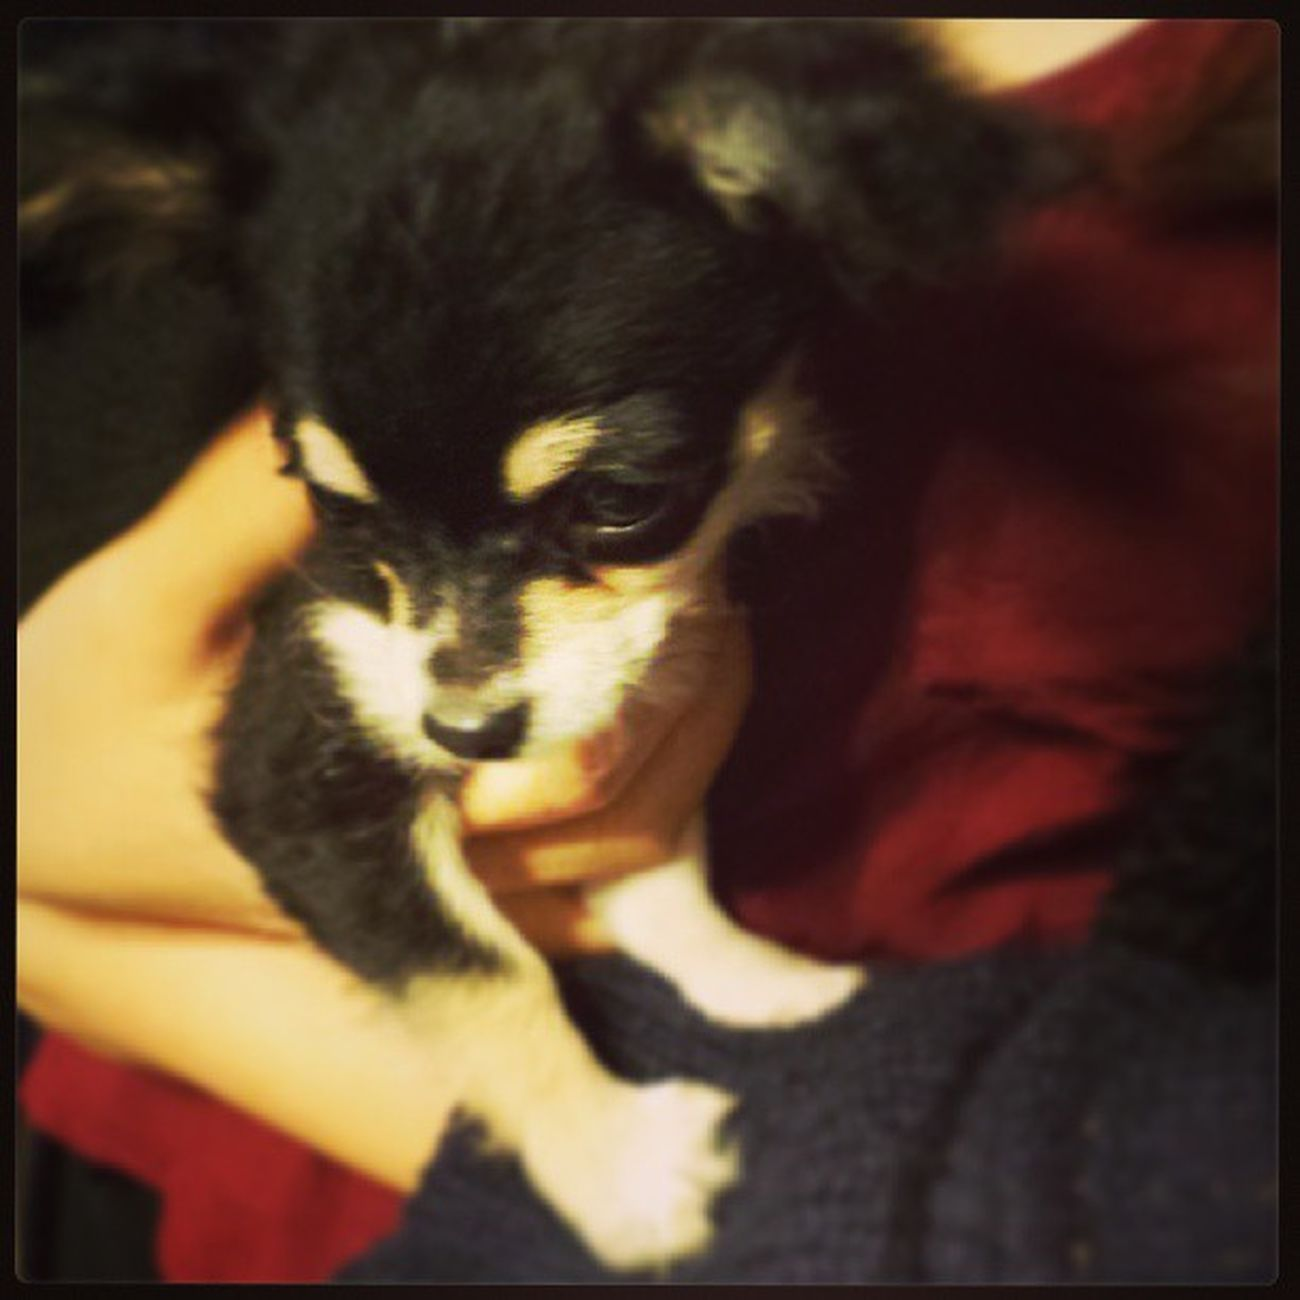 Awww cutie cutiee<3 Puppy Chiwawa Hkers Auckland hkig hkiggirl love